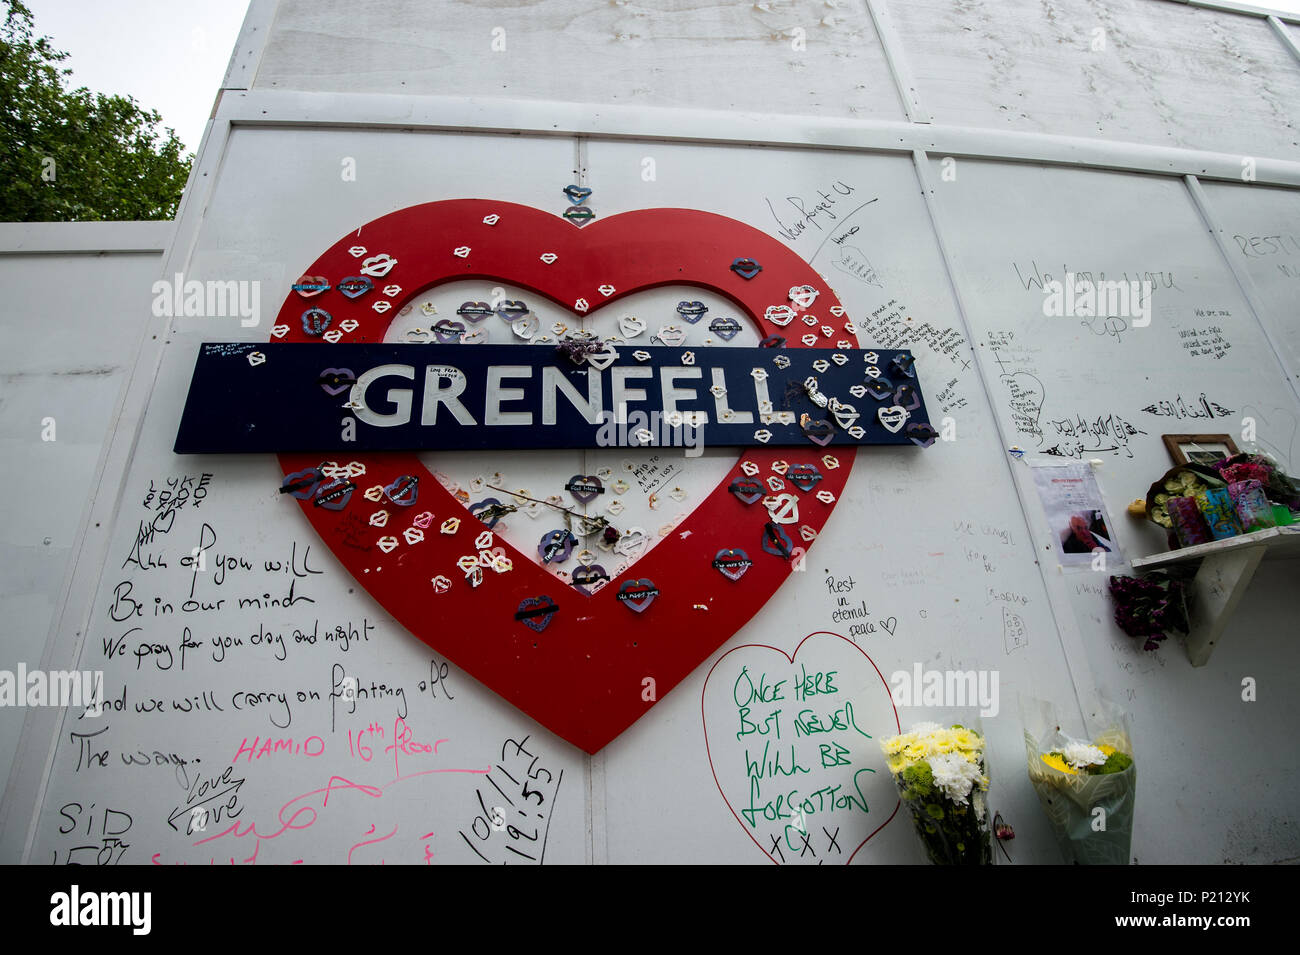 London, UK. 13th Jun, 2018. Grenfell's logo with massages at the foot of the tower. On the first anniversary of the Grenfell Tower fire, the area around the tower has been filled with flowers, candles and messages to remember those who lost their lives. Credit: SOPA Images Limited/Alamy Live News - Stock Image